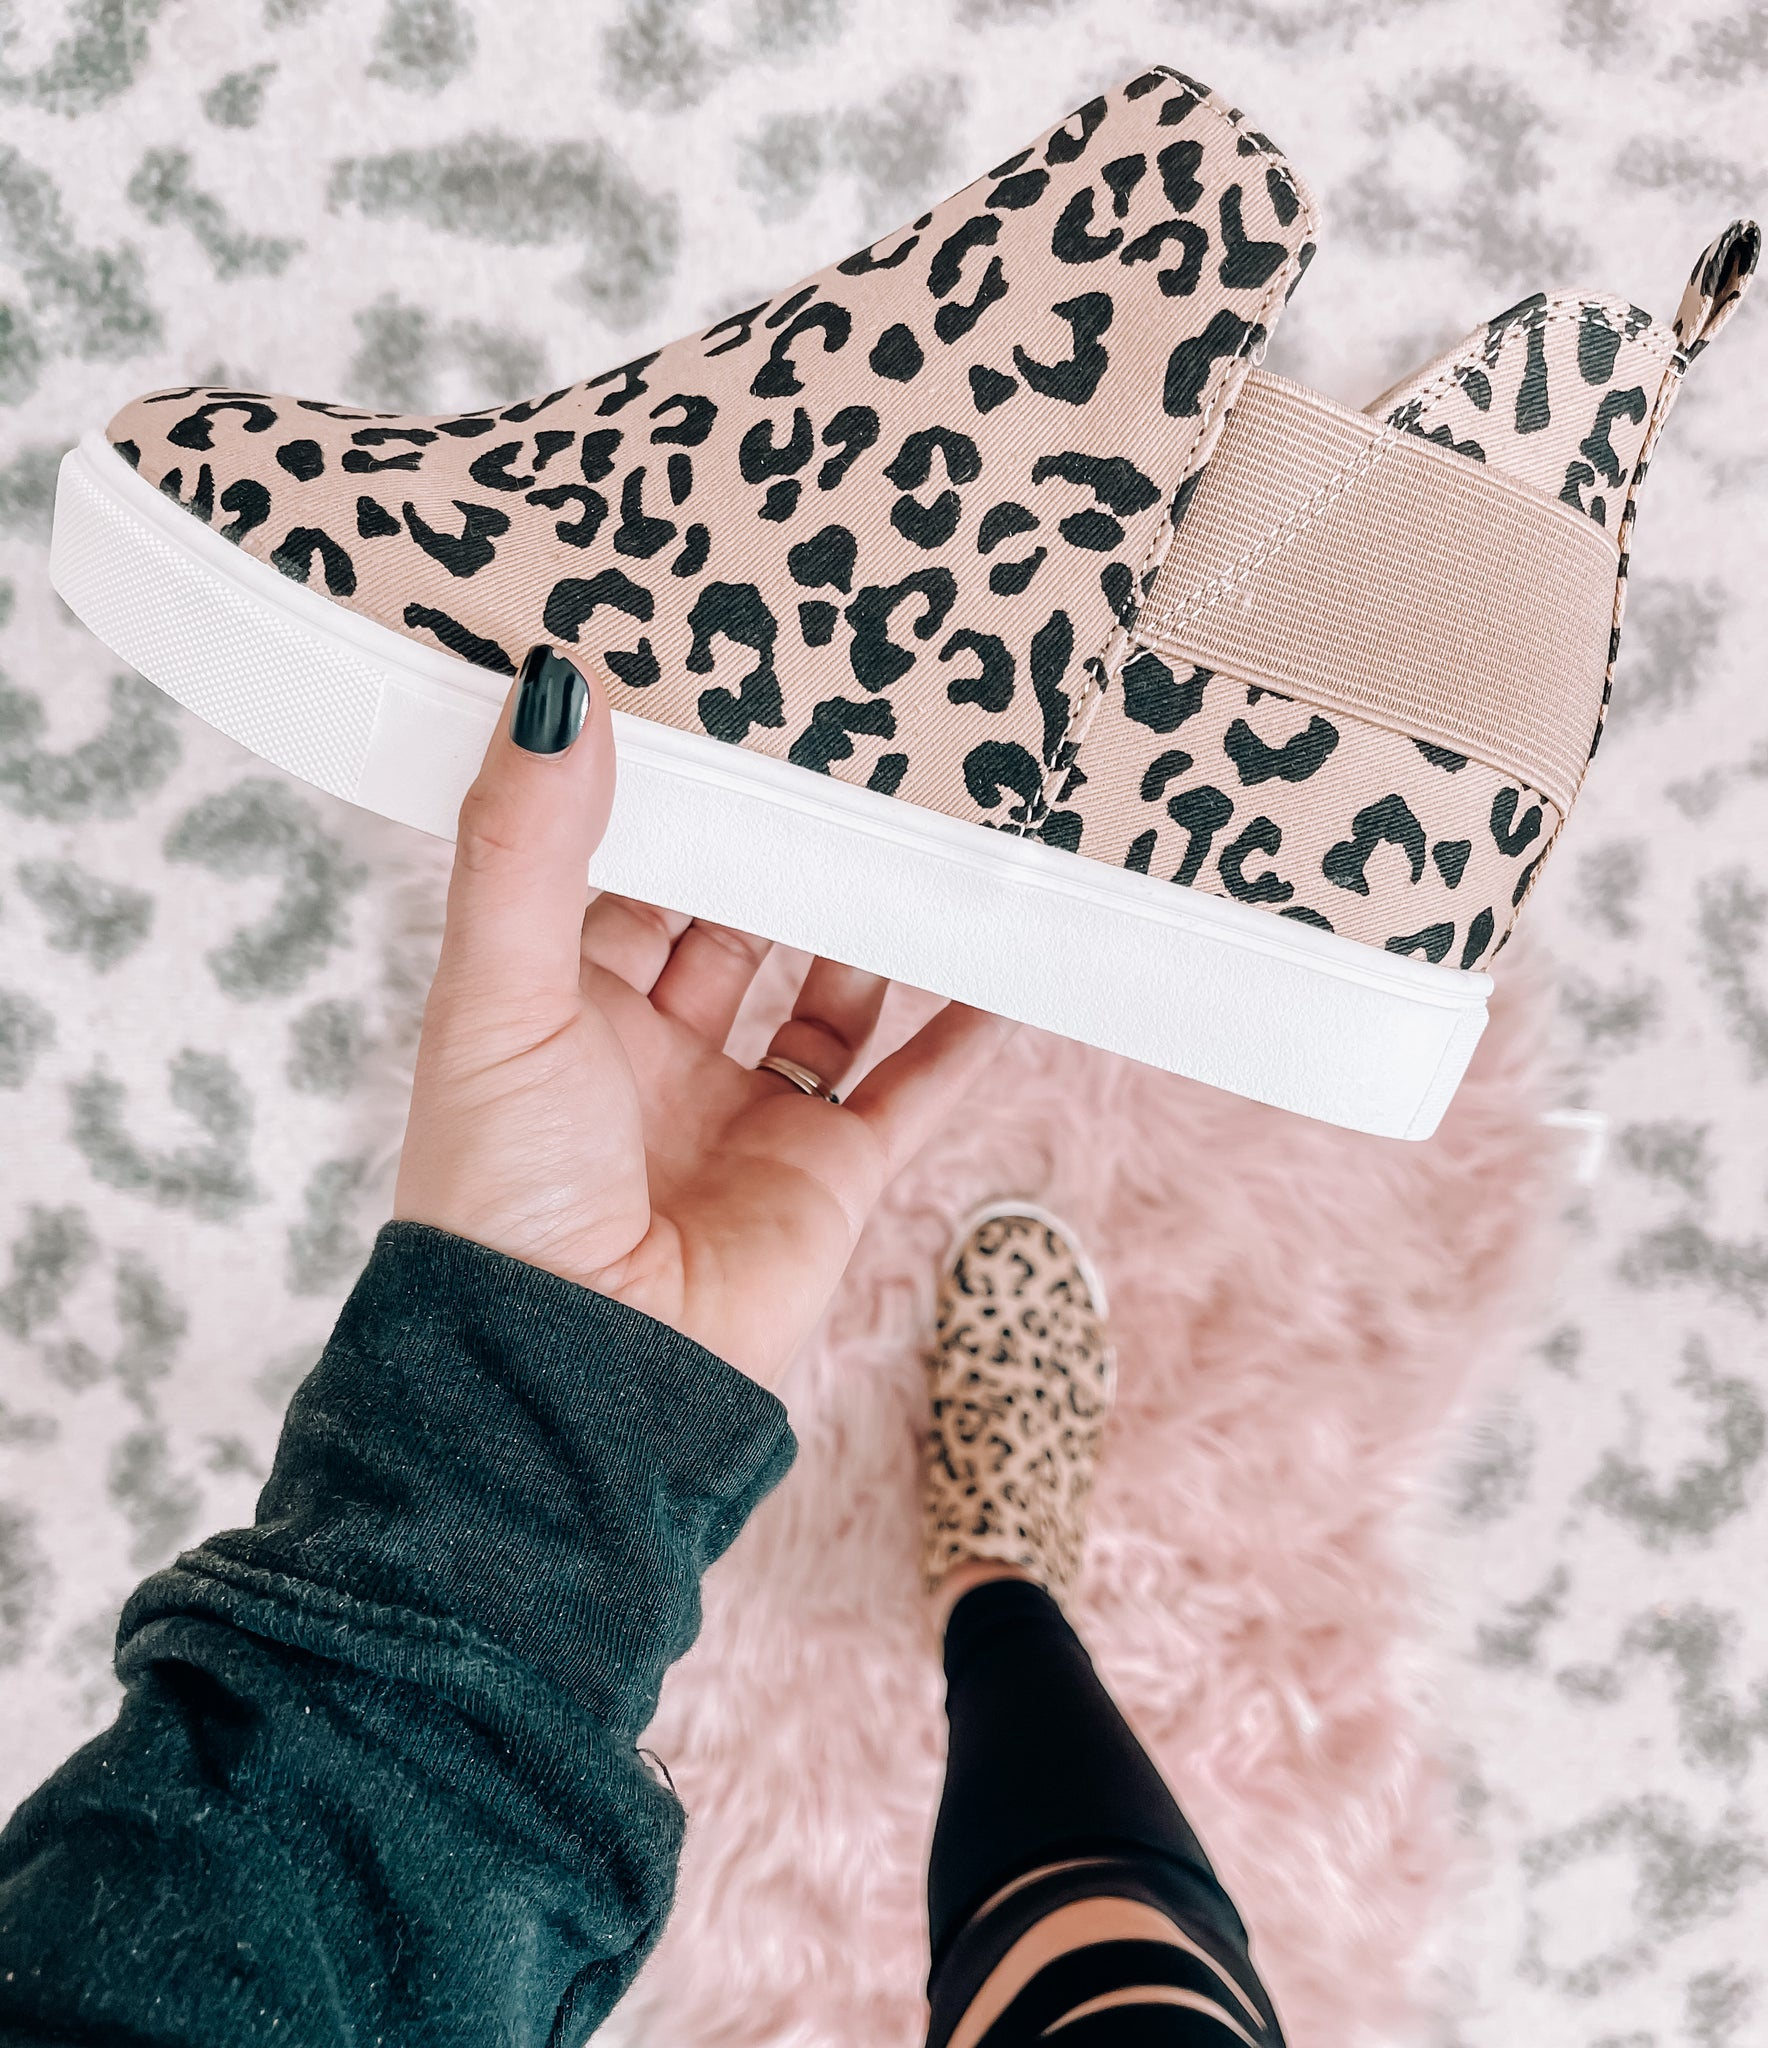 Cheetah Booties - This & That Boutique Shop